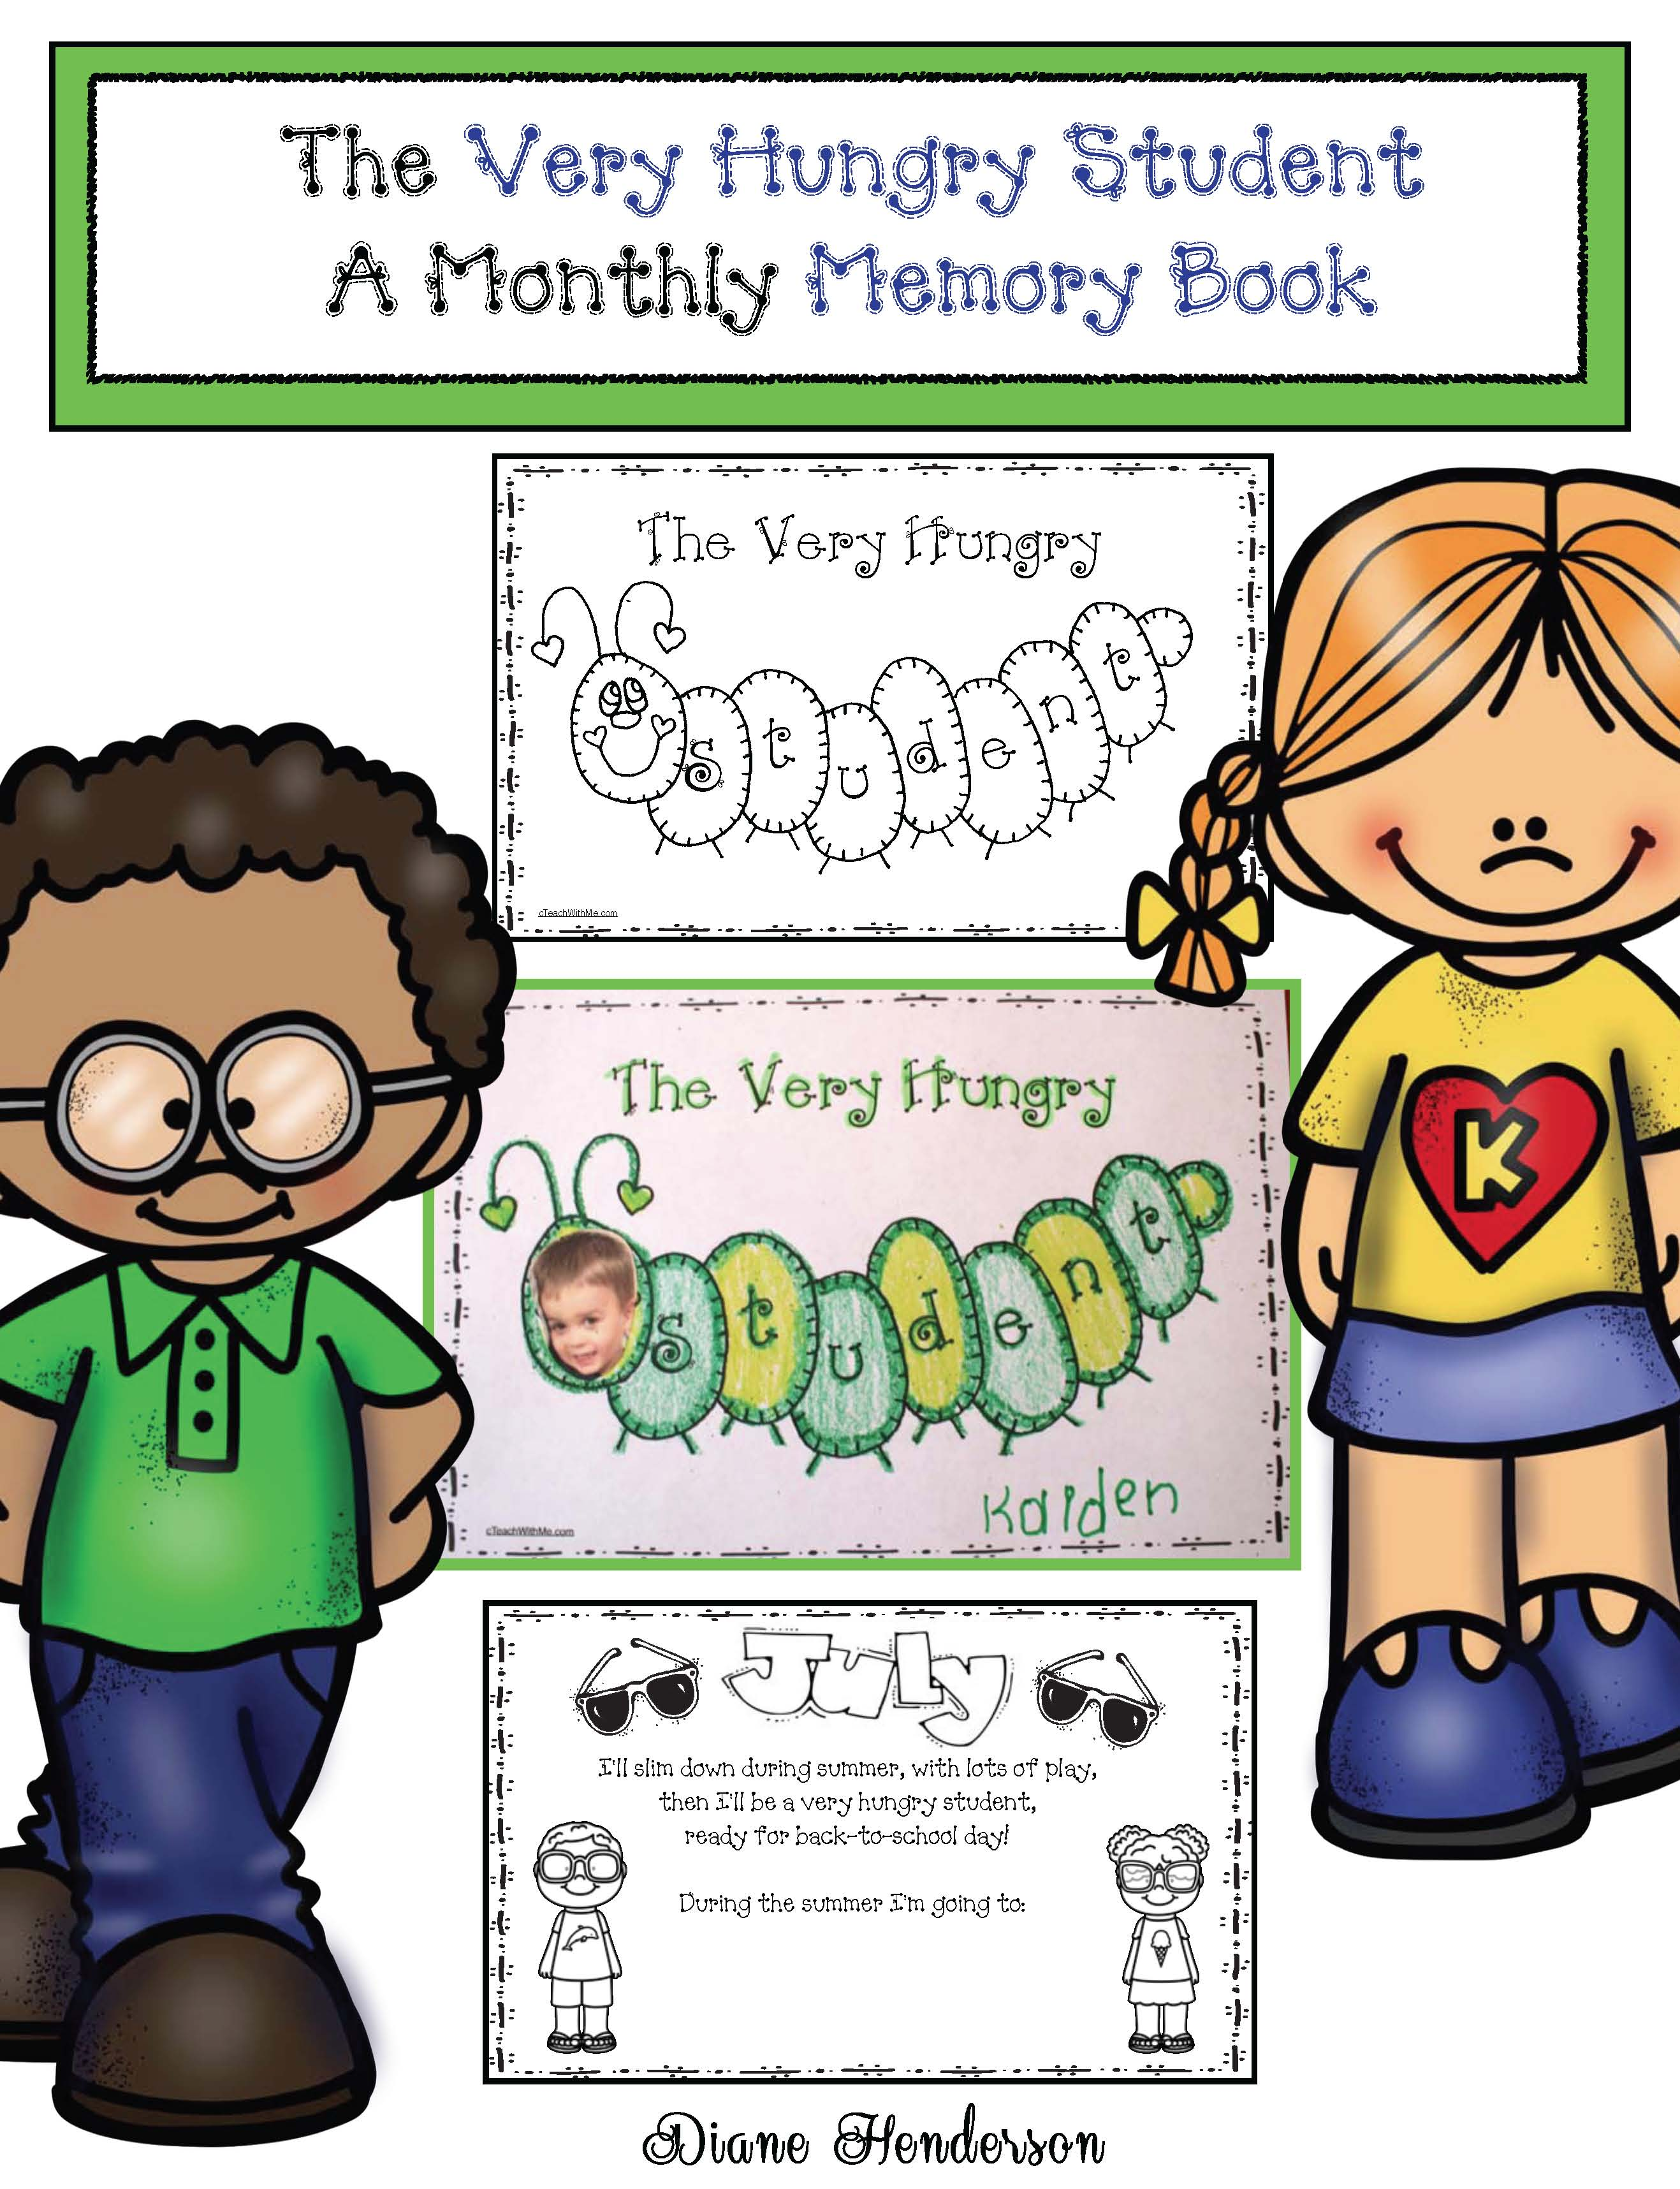 the very hungry student, school memory books, monthly memory books, writing prompts for early elementary